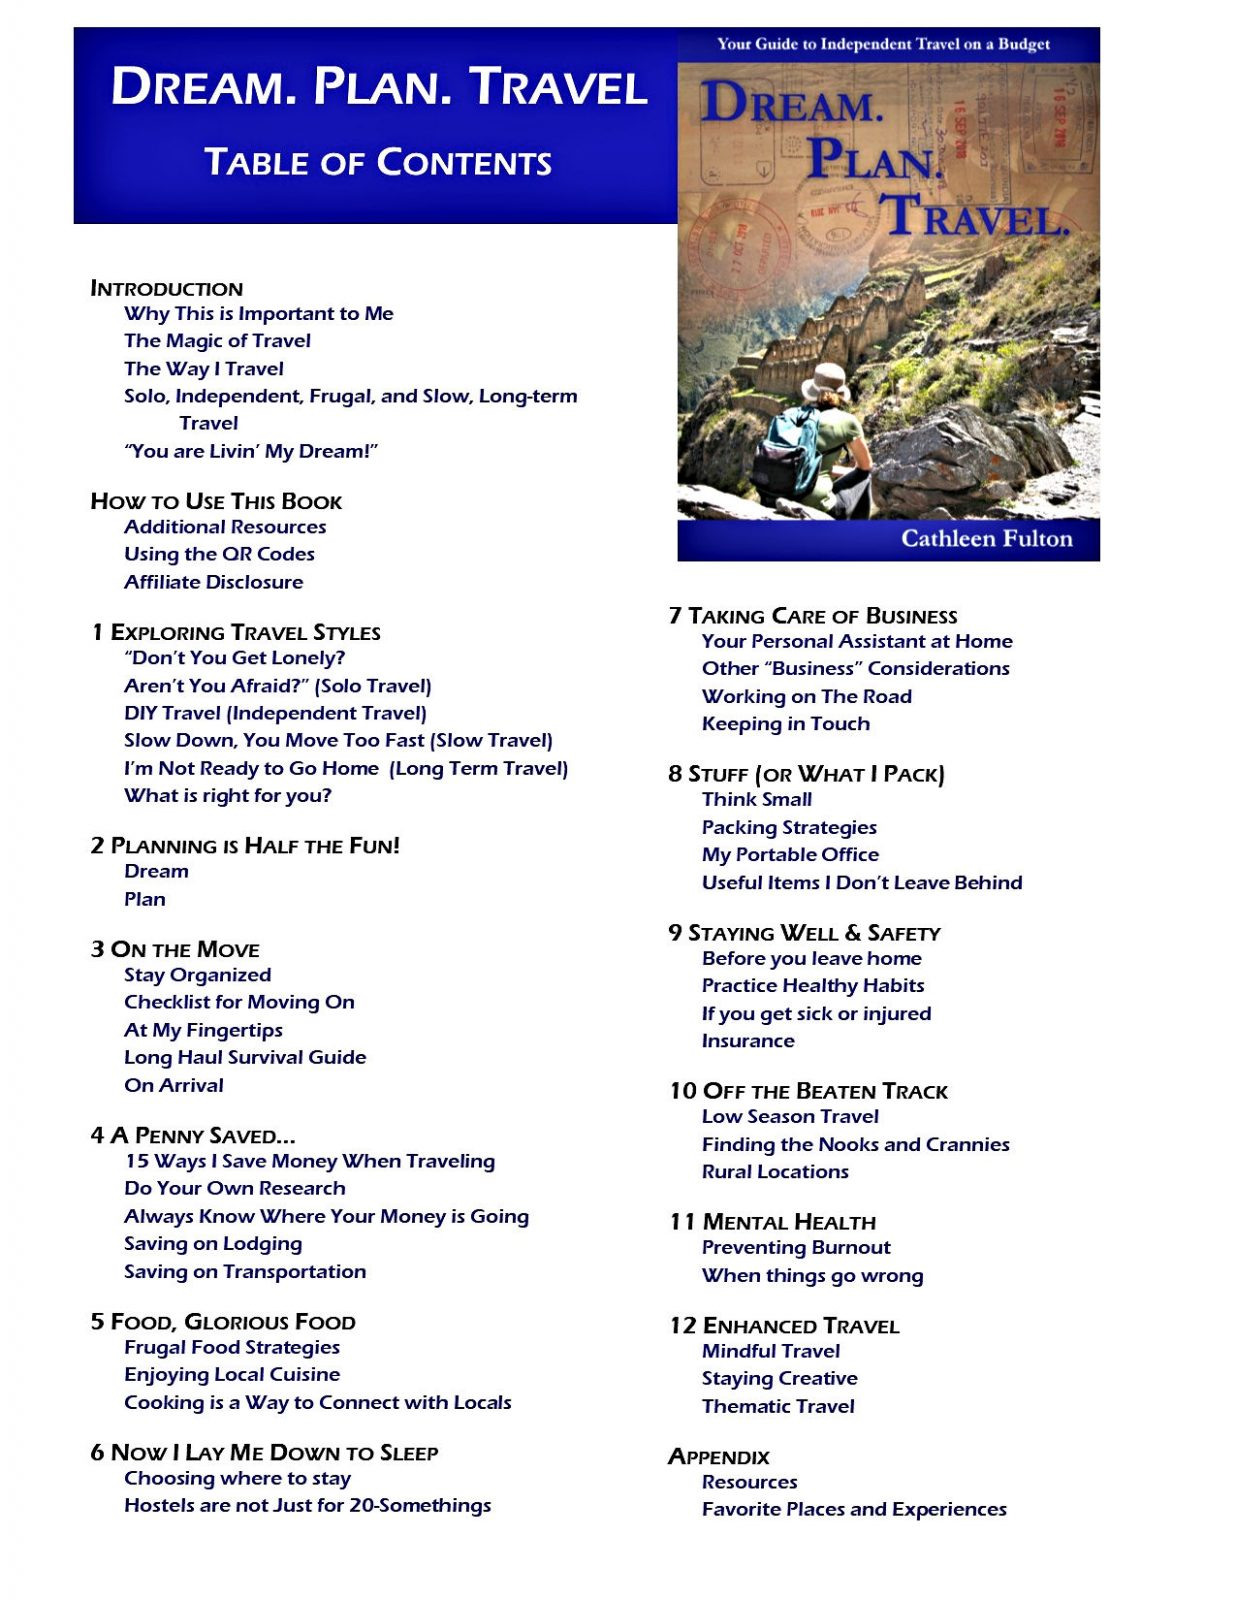 Table of Contents for Dream. Plan. Travel.